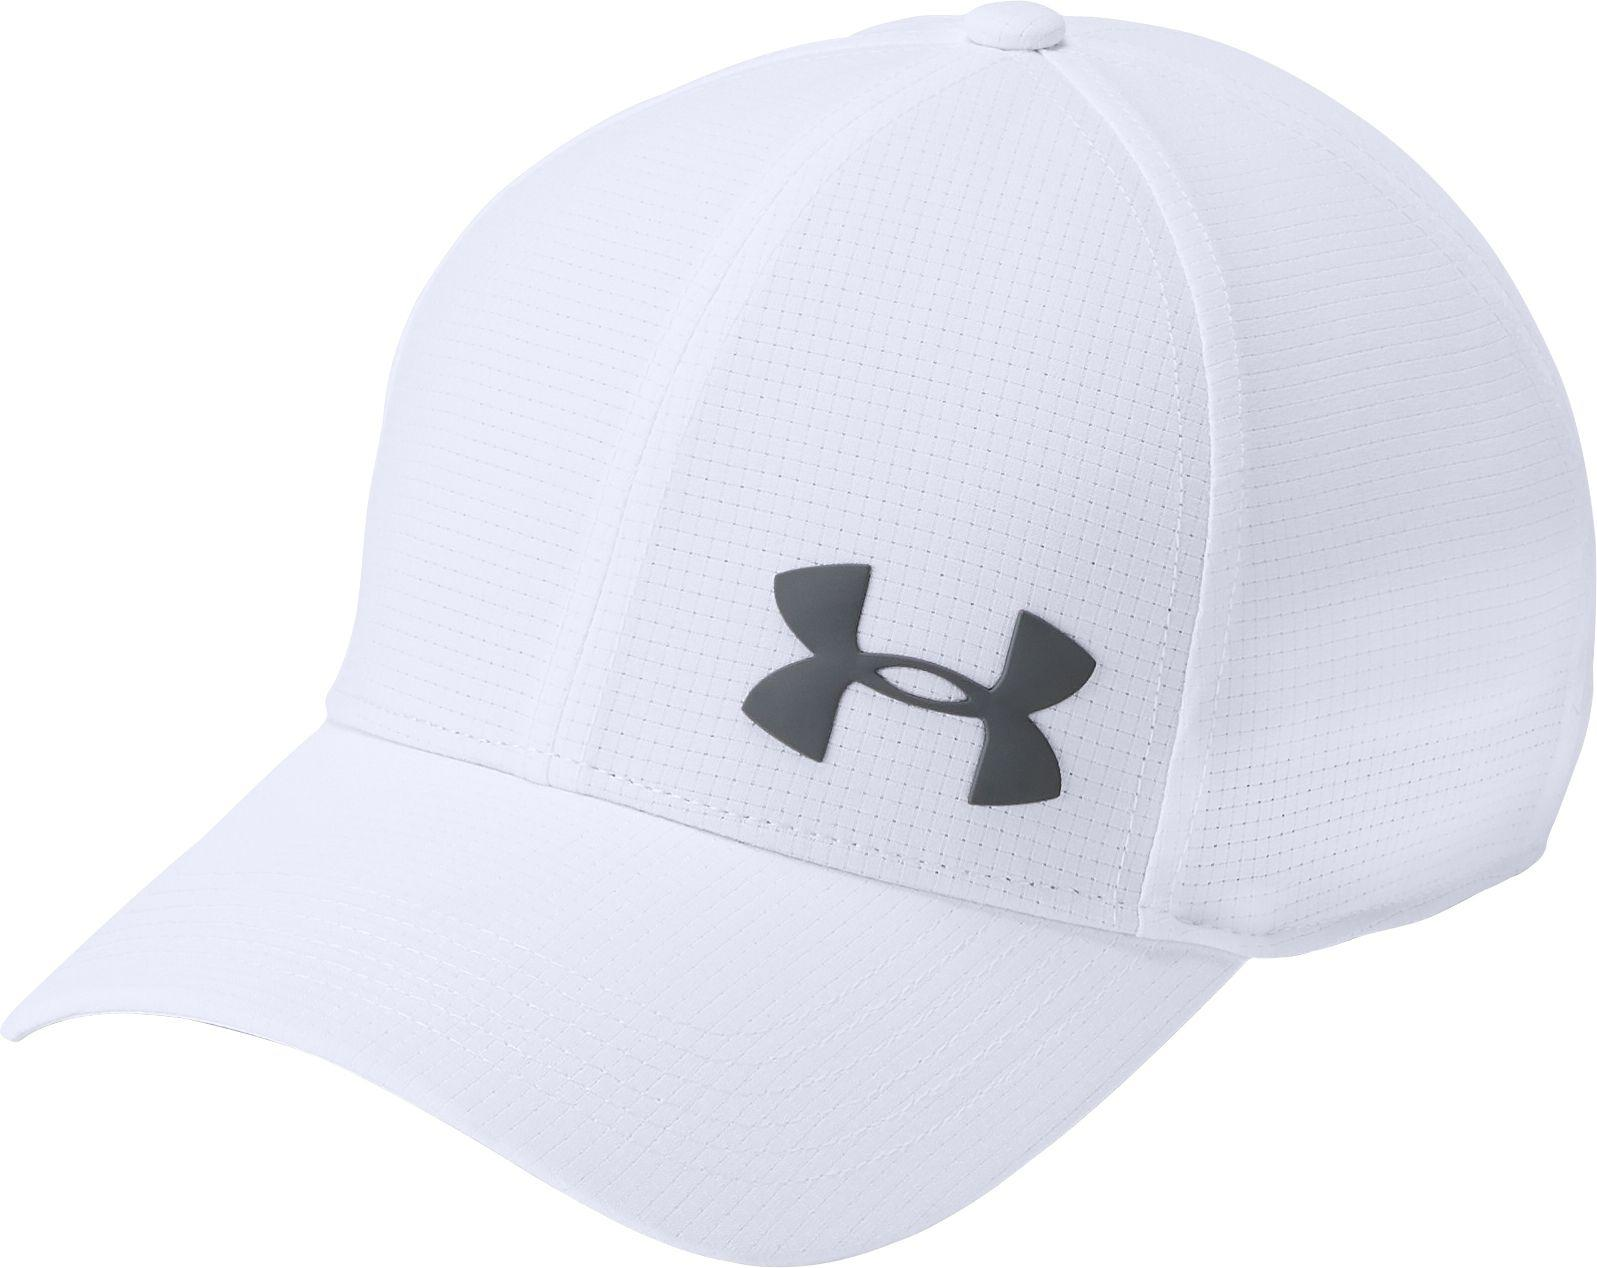 Lyst - Under Armour Airvent Core Hat in White for Men 45c5a34d3f2